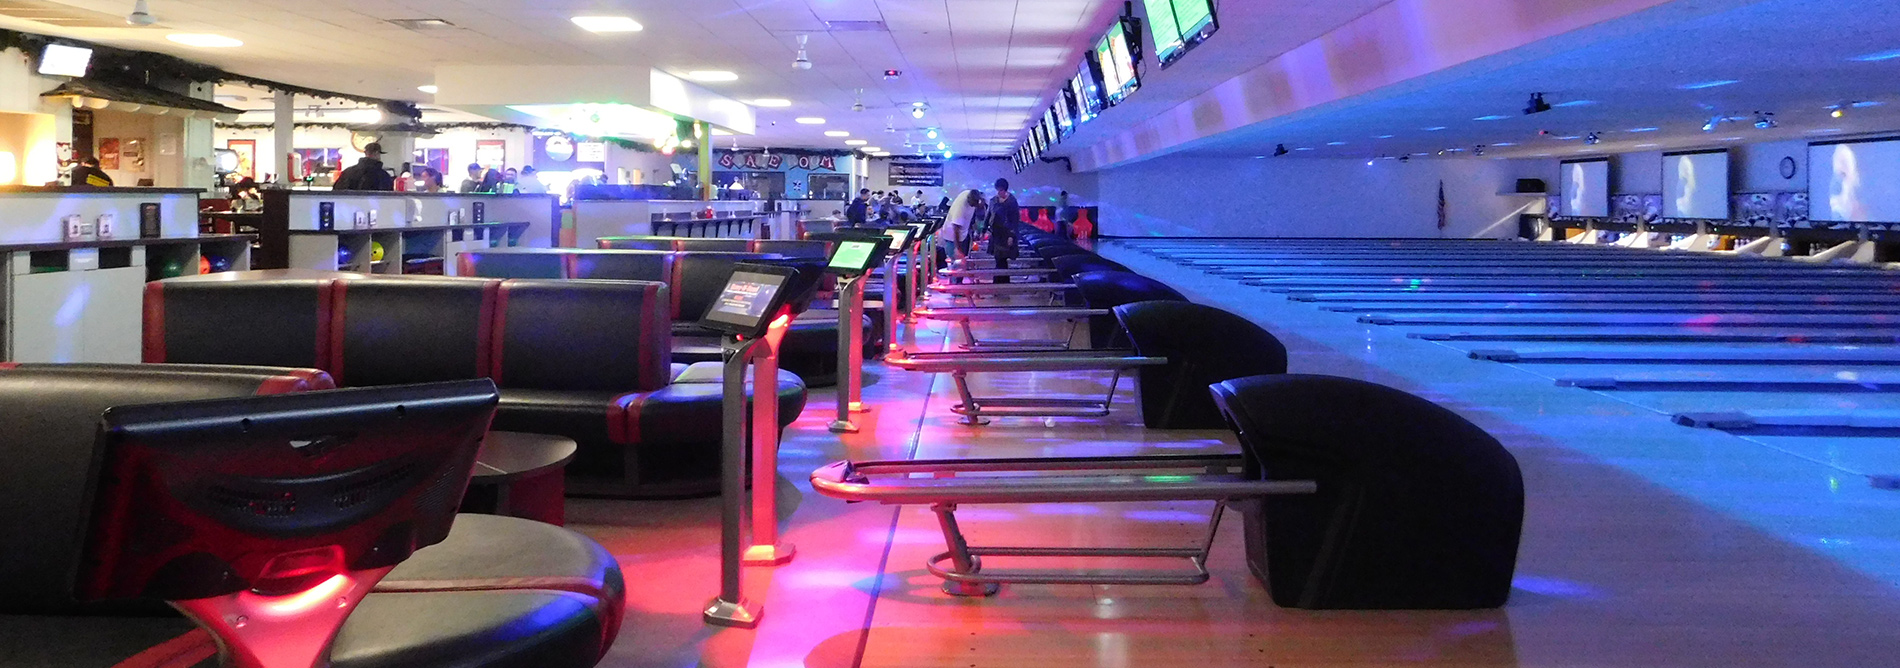 QUBICAAMF-bowling-boutique-Rancho-banner.jpg